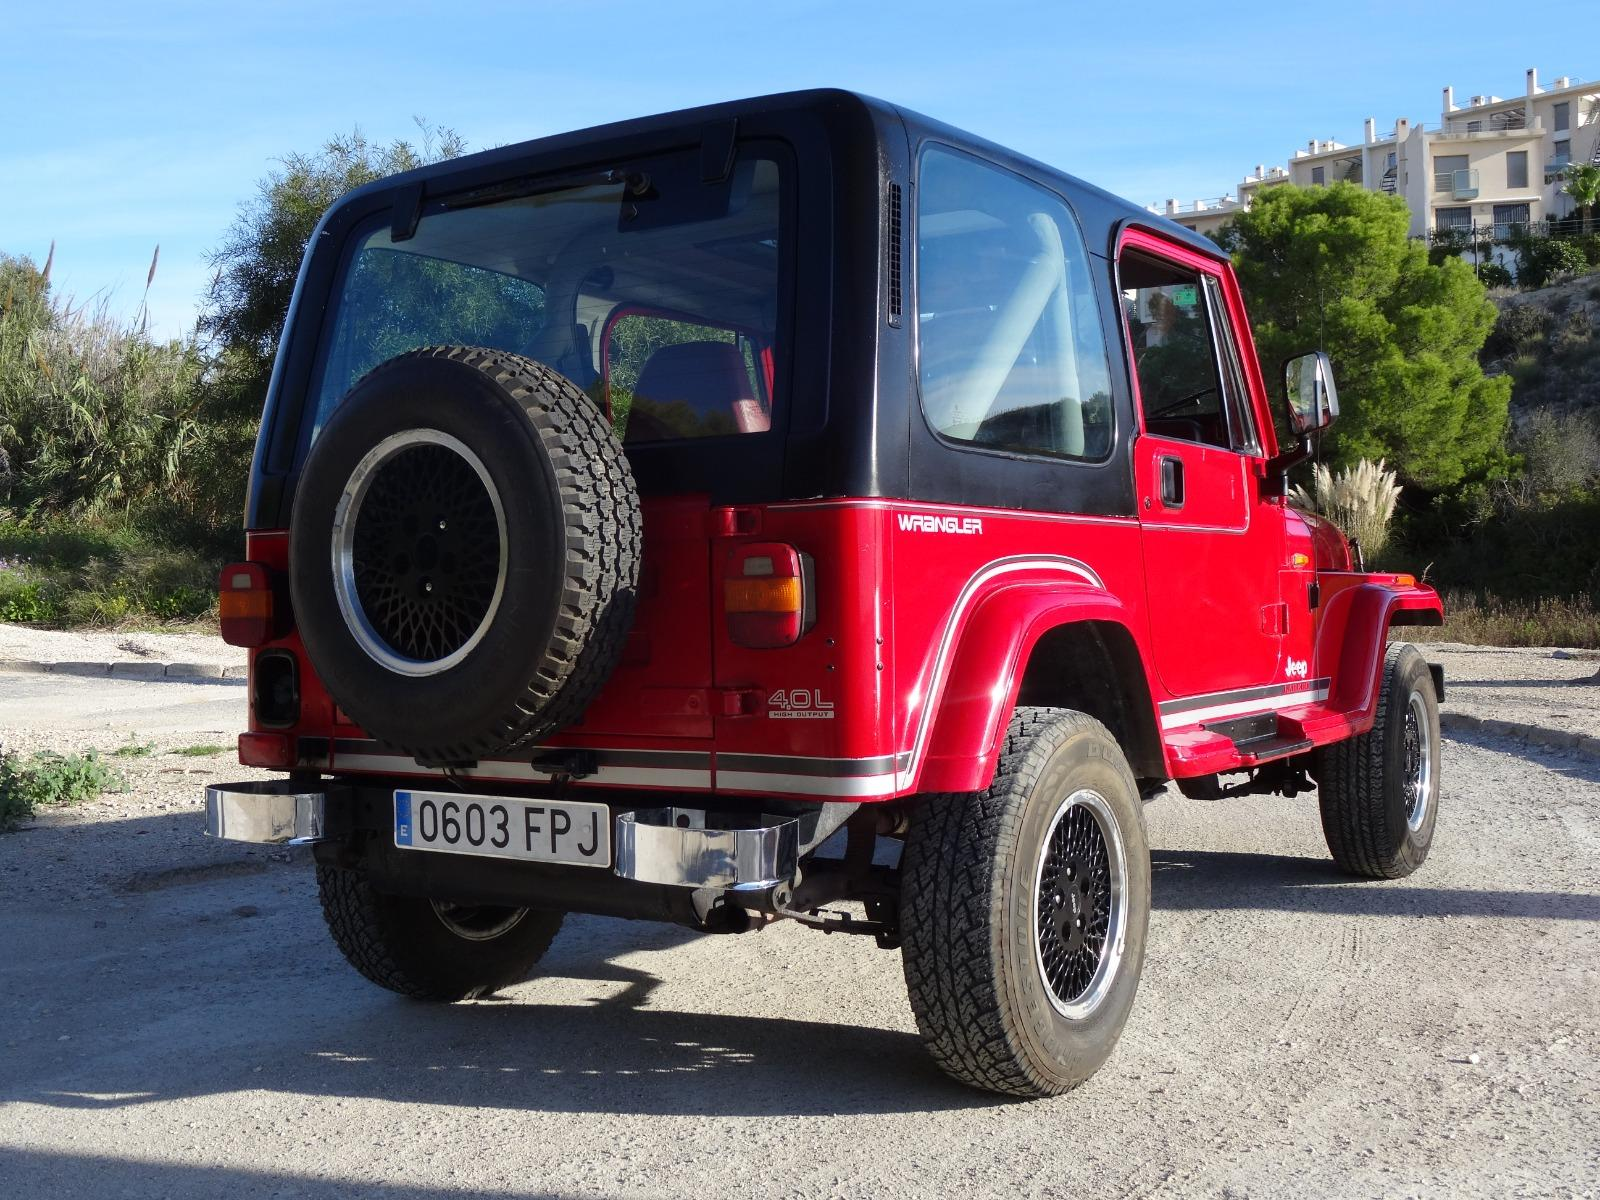 Used Jeep Wrangler 4.0 2dr hard top left hand drive 2 ...